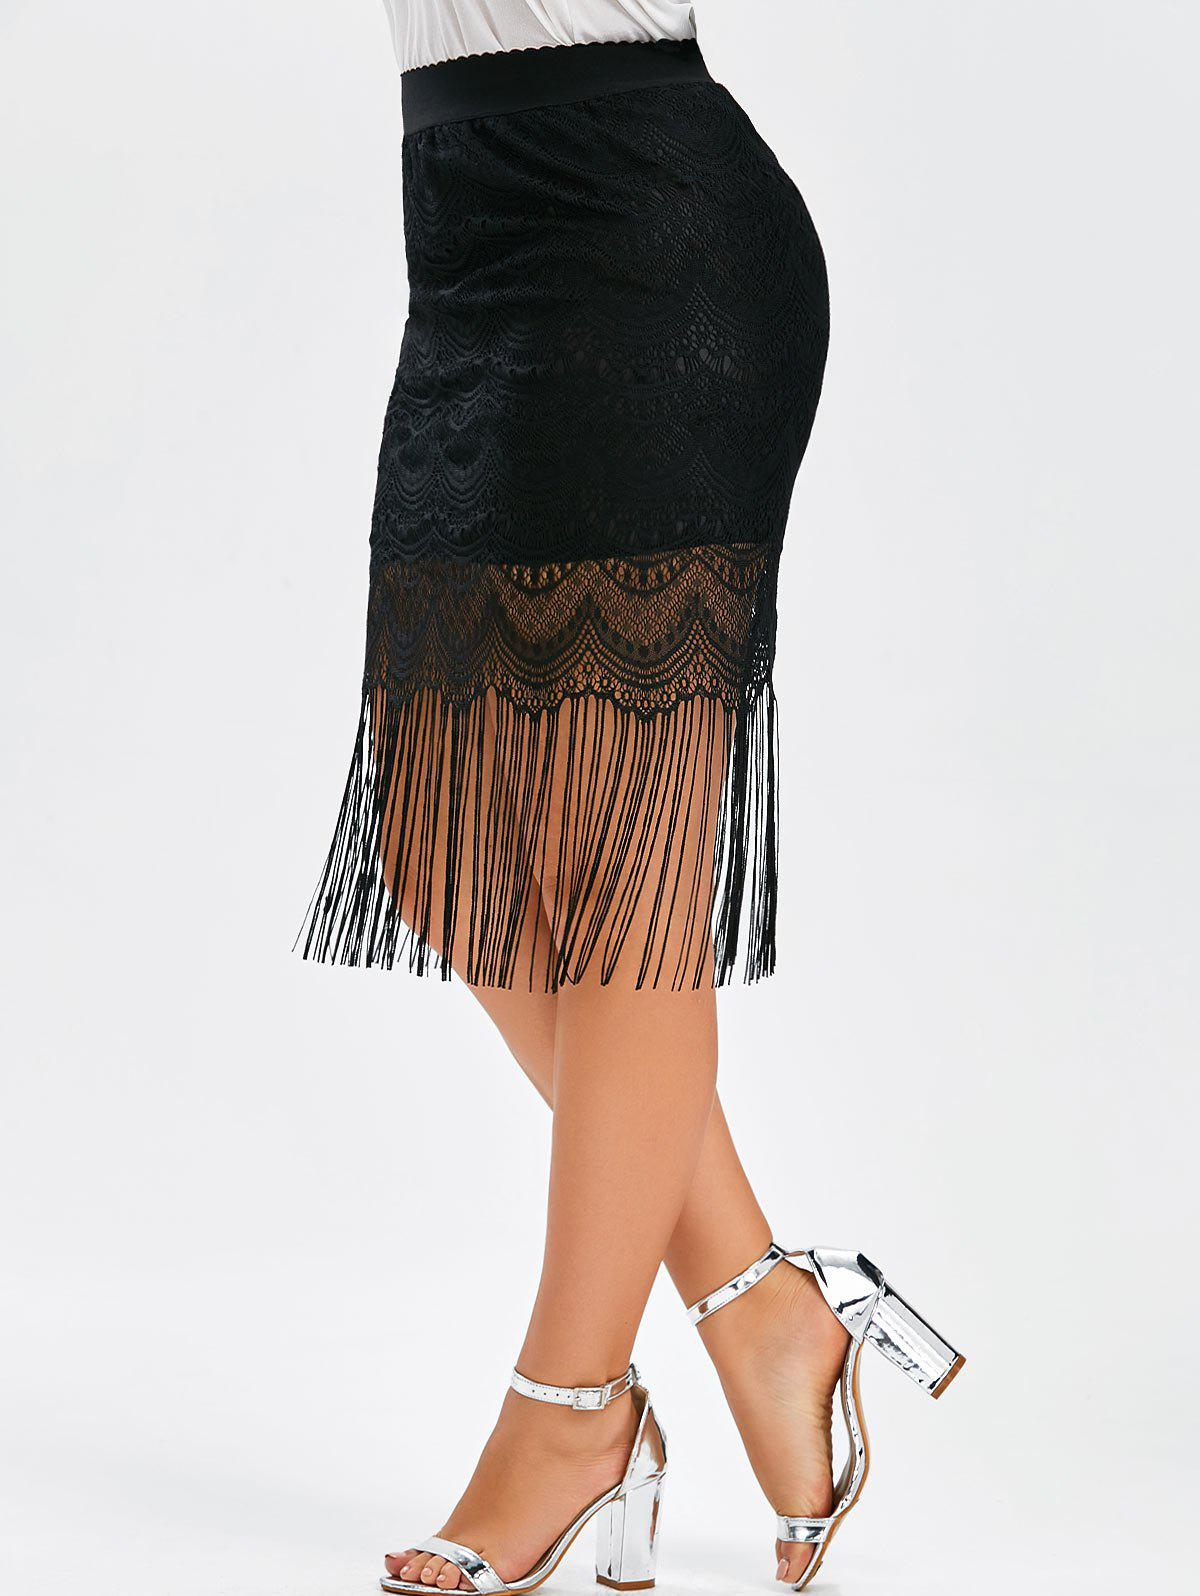 Plus Size Fringe Lace SkirtWOMEN<br><br>Size: 4XL; Color: BLACK; Material: Polyester; Length: Mid-Calf; Silhouette: A-Line; Pattern Type: Solid; Season: Summer; With Belt: No; Weight: 0.2200kg; Package Contents: 1 x Skirt;